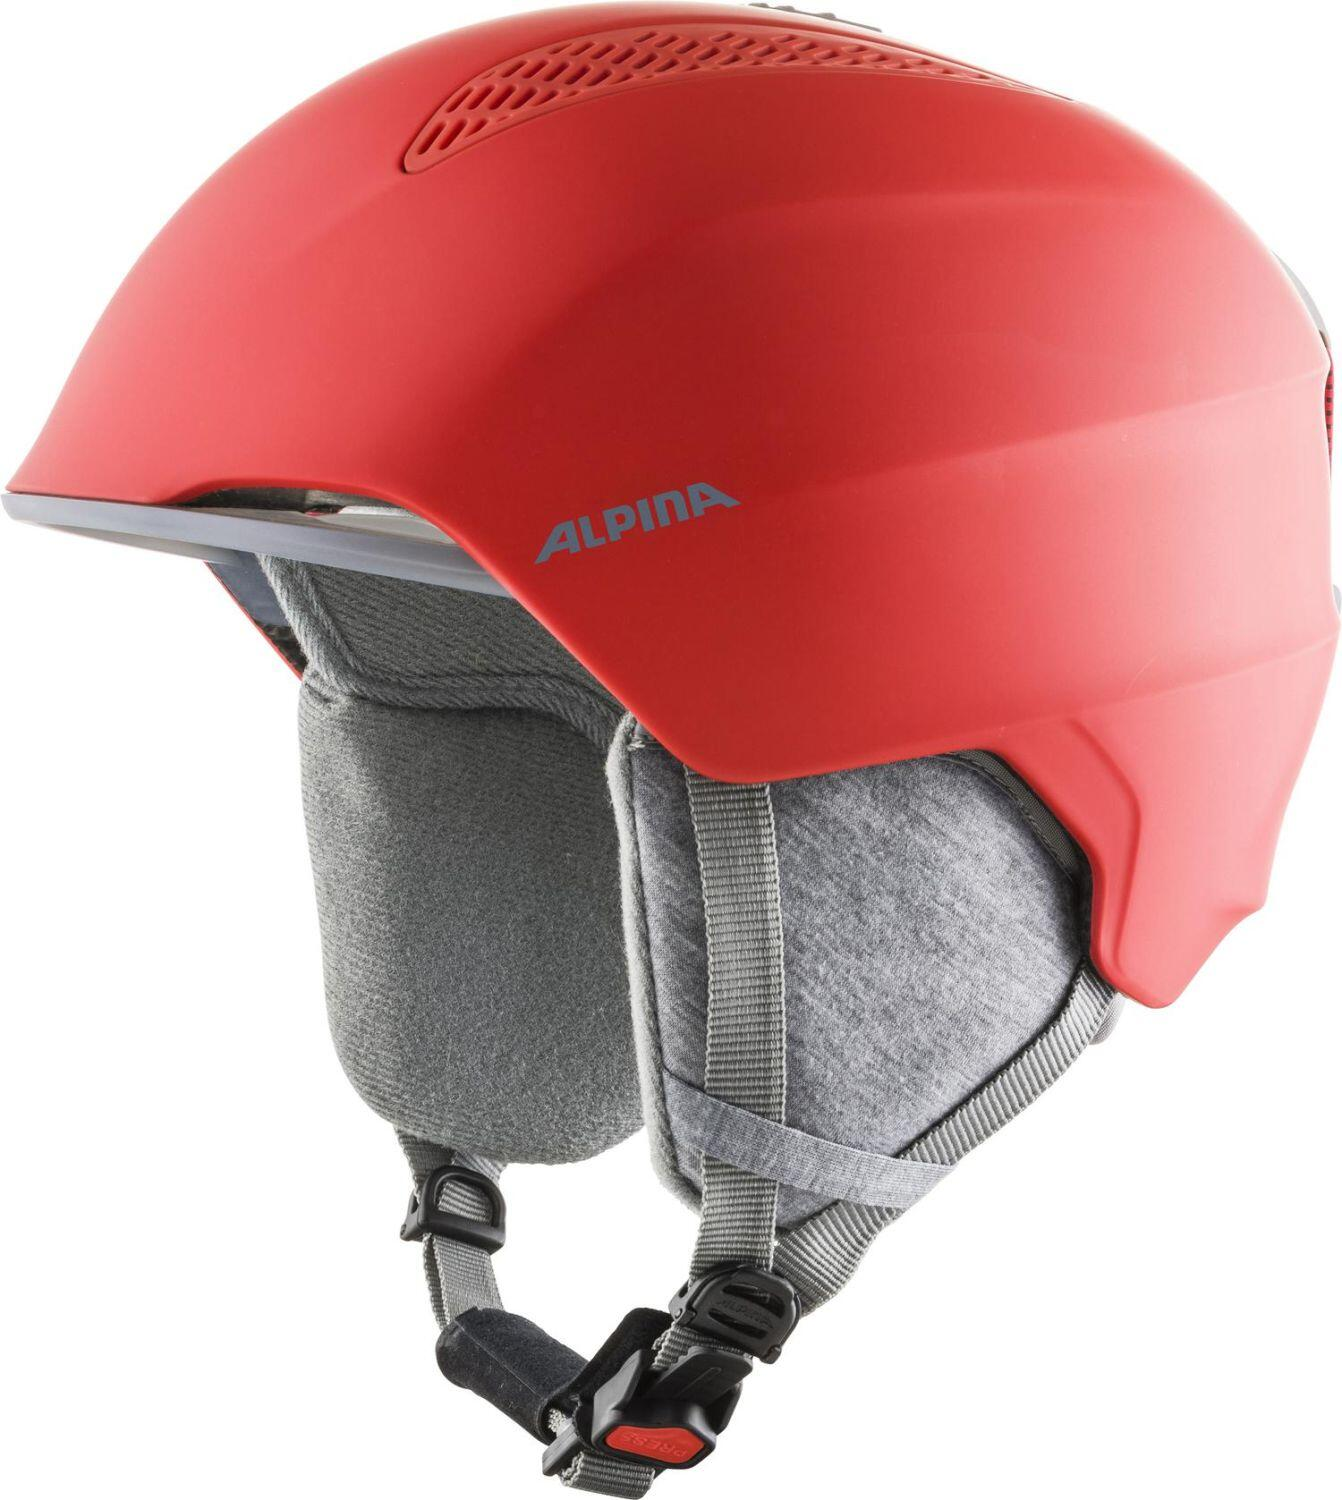 Fürski - Alpina Grand Kinder Skihelm (Größe 51 54 cm, 51 red) - Onlineshop